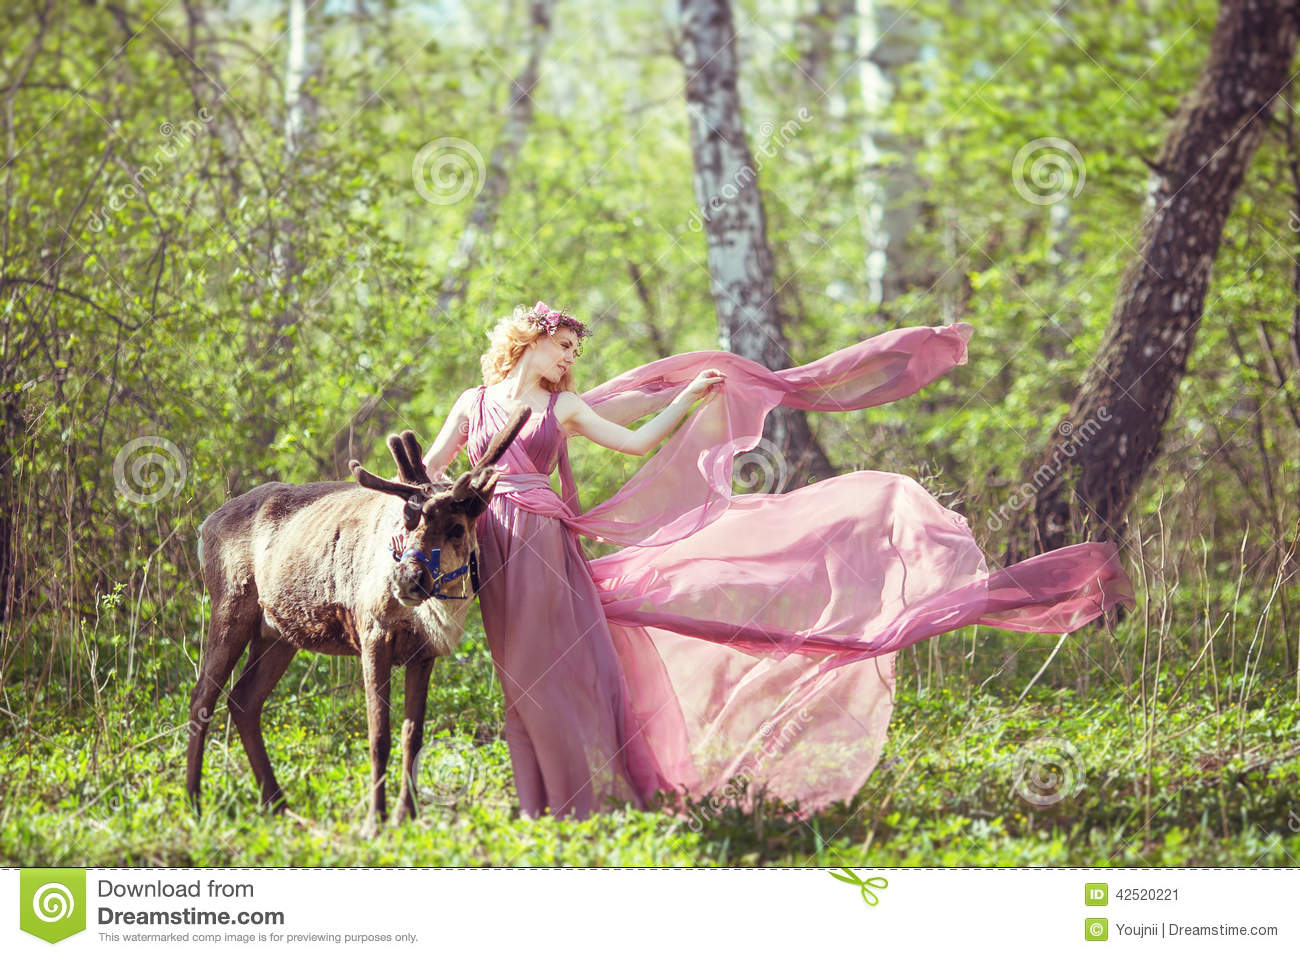 Girl in fairy dress with a flowing train on the dress and reindeer in the forest